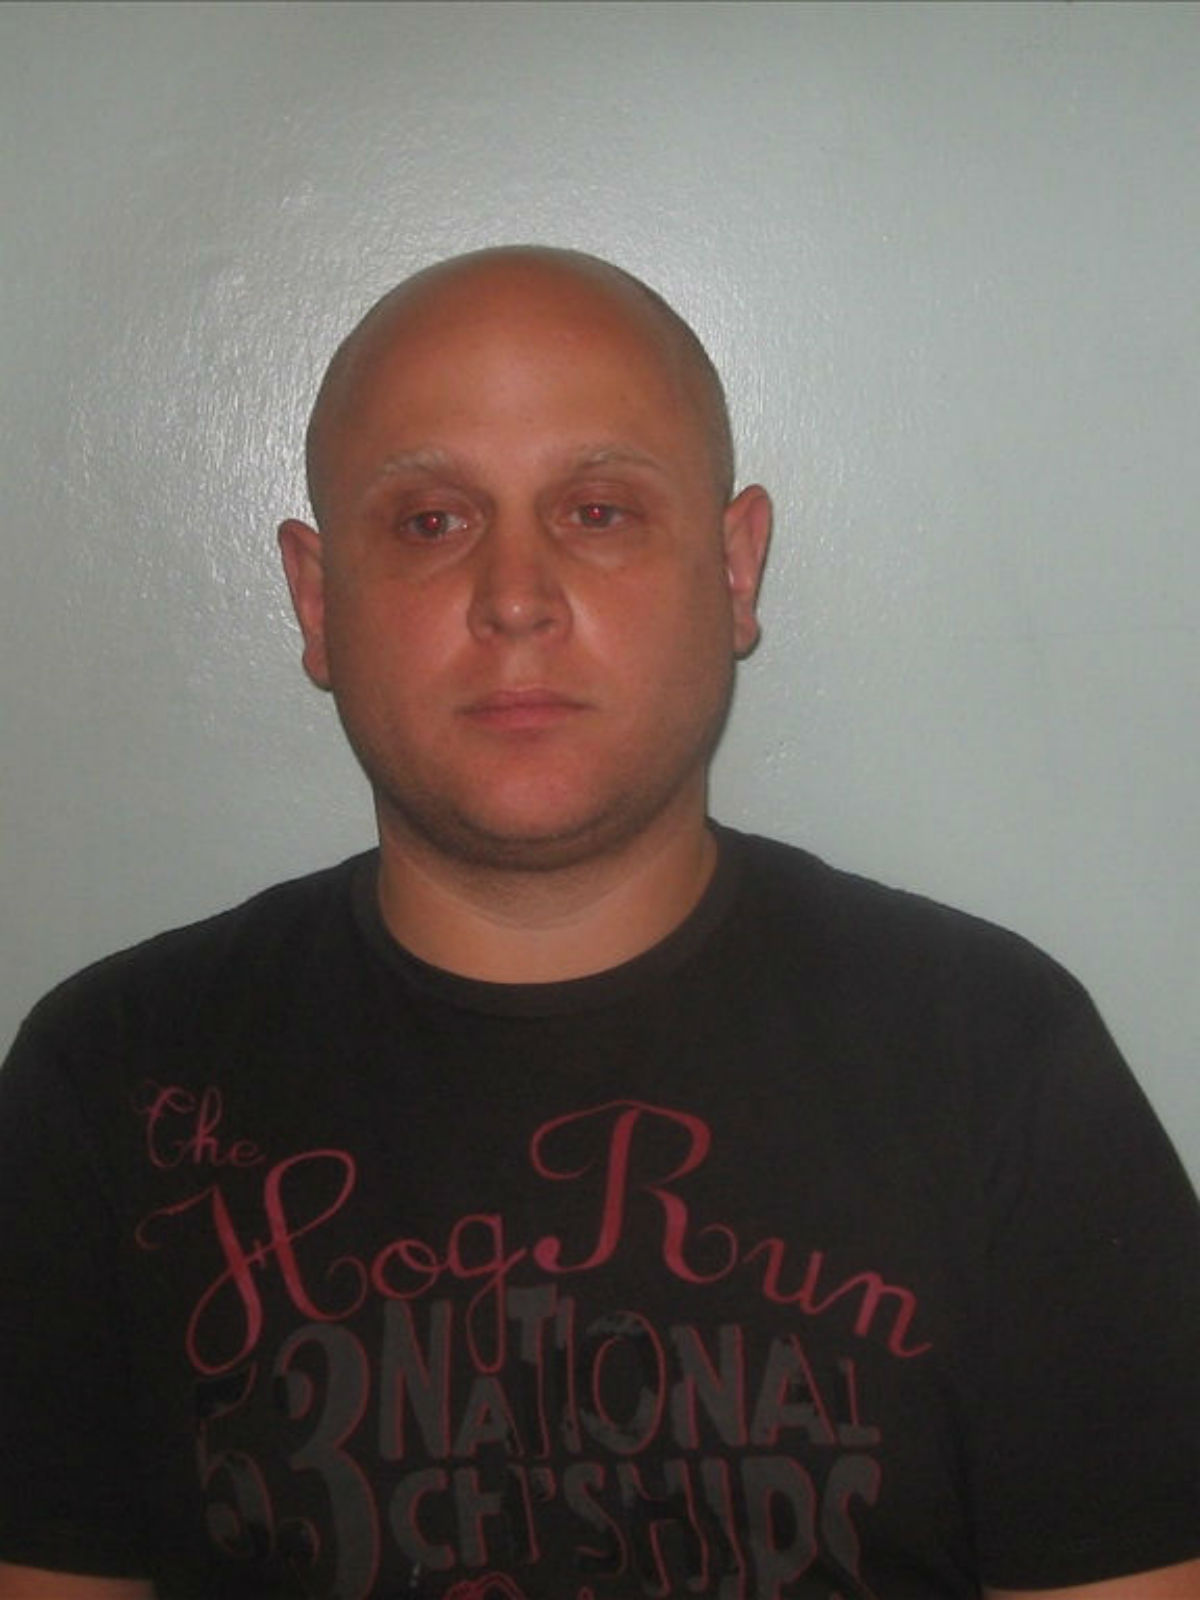 Money launderer jailed for part in £5.3m alcohol smuggling plot